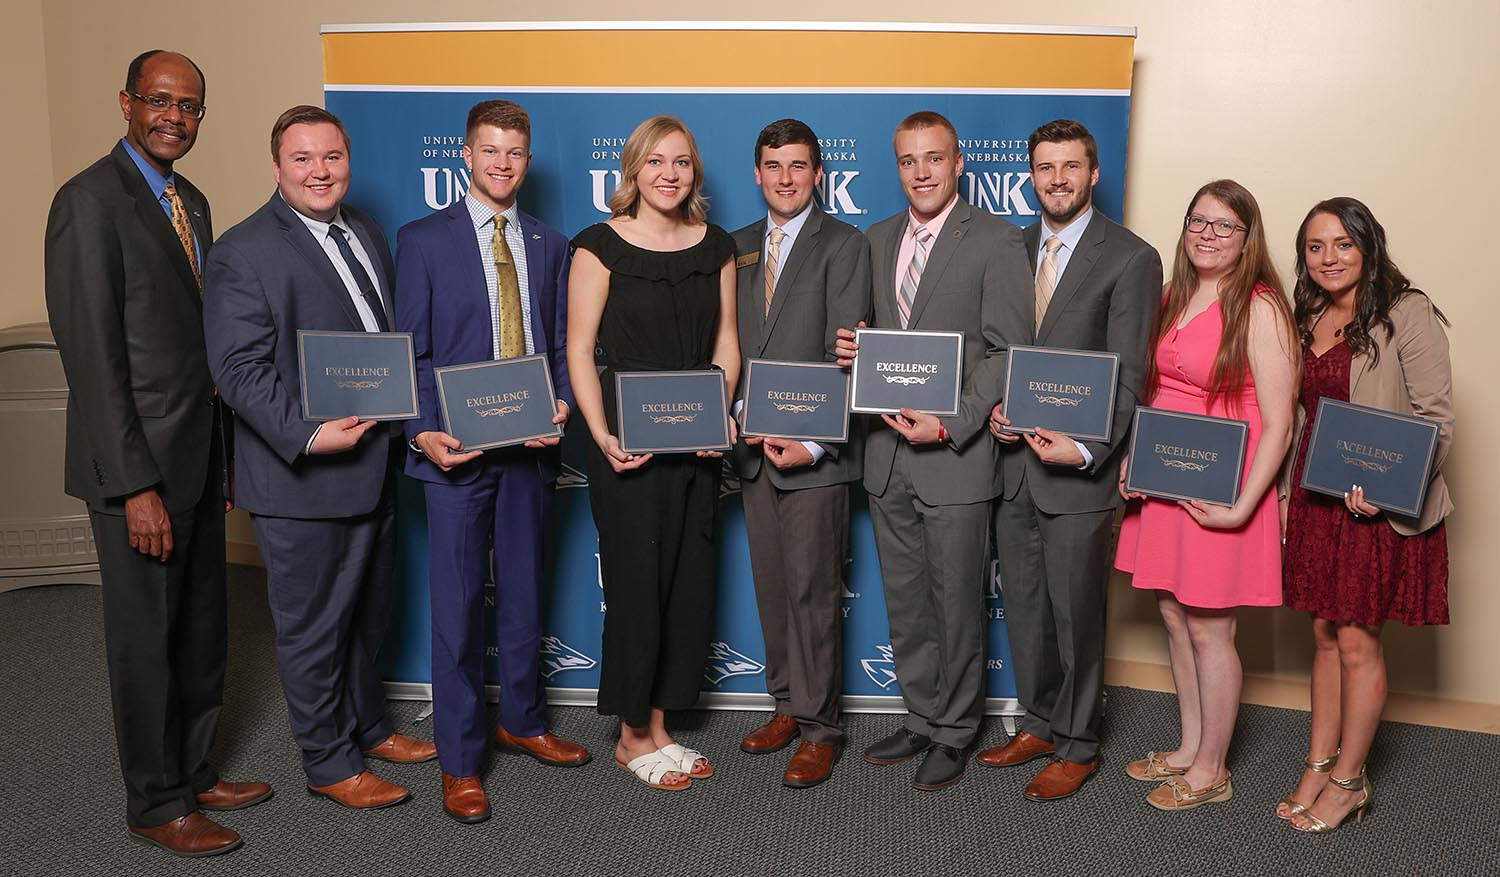 Ryan Clark, fourth from right, was one of nine UNK students who received the Mary Jane and William R. Nester Student Leadership Award in April. The award recognizes outstanding seniors who have excelled academically and demonstrated service, character and leadership during their time at UNK. (Photo by Corbey R. Dorsey, UNK Communications)